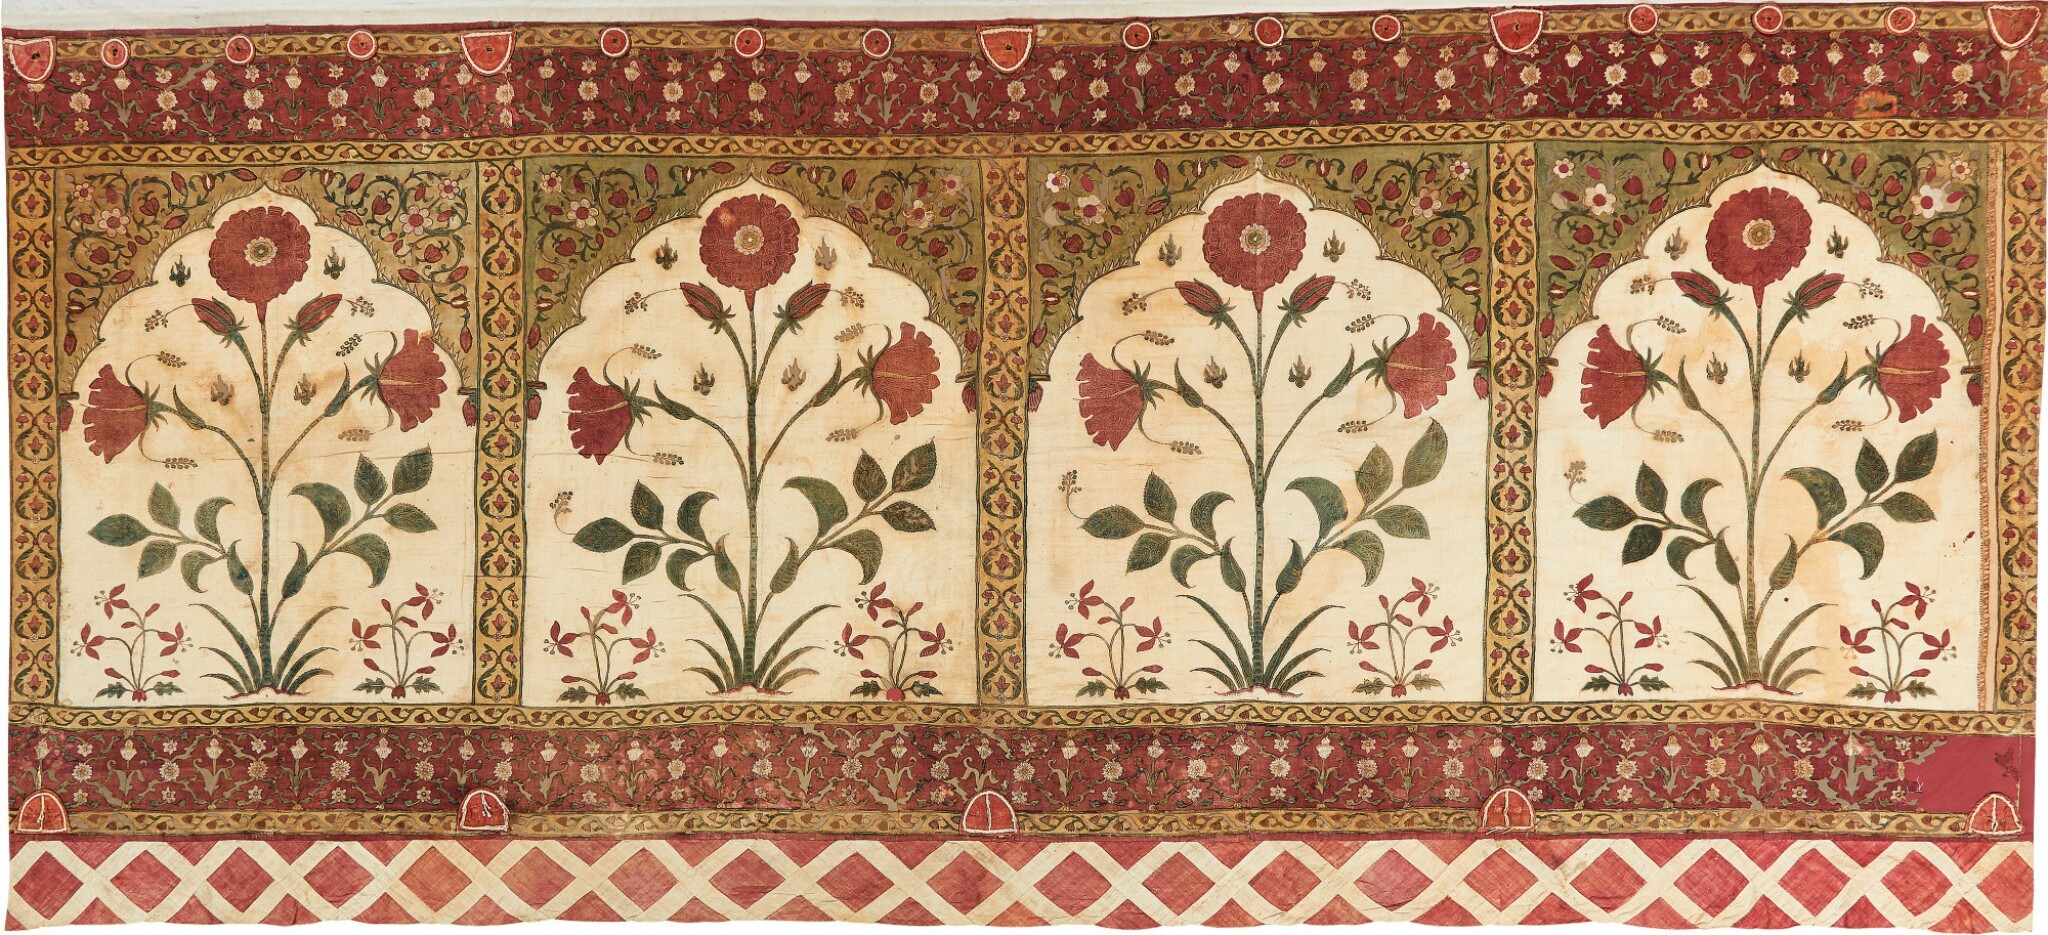 View full screen - View 1 of Lot 143. A TENT (QANAT) PANEL WITH FOLIATE STEMS WITHIN NICHES, NORTH INDIA, 17TH CENTURY.